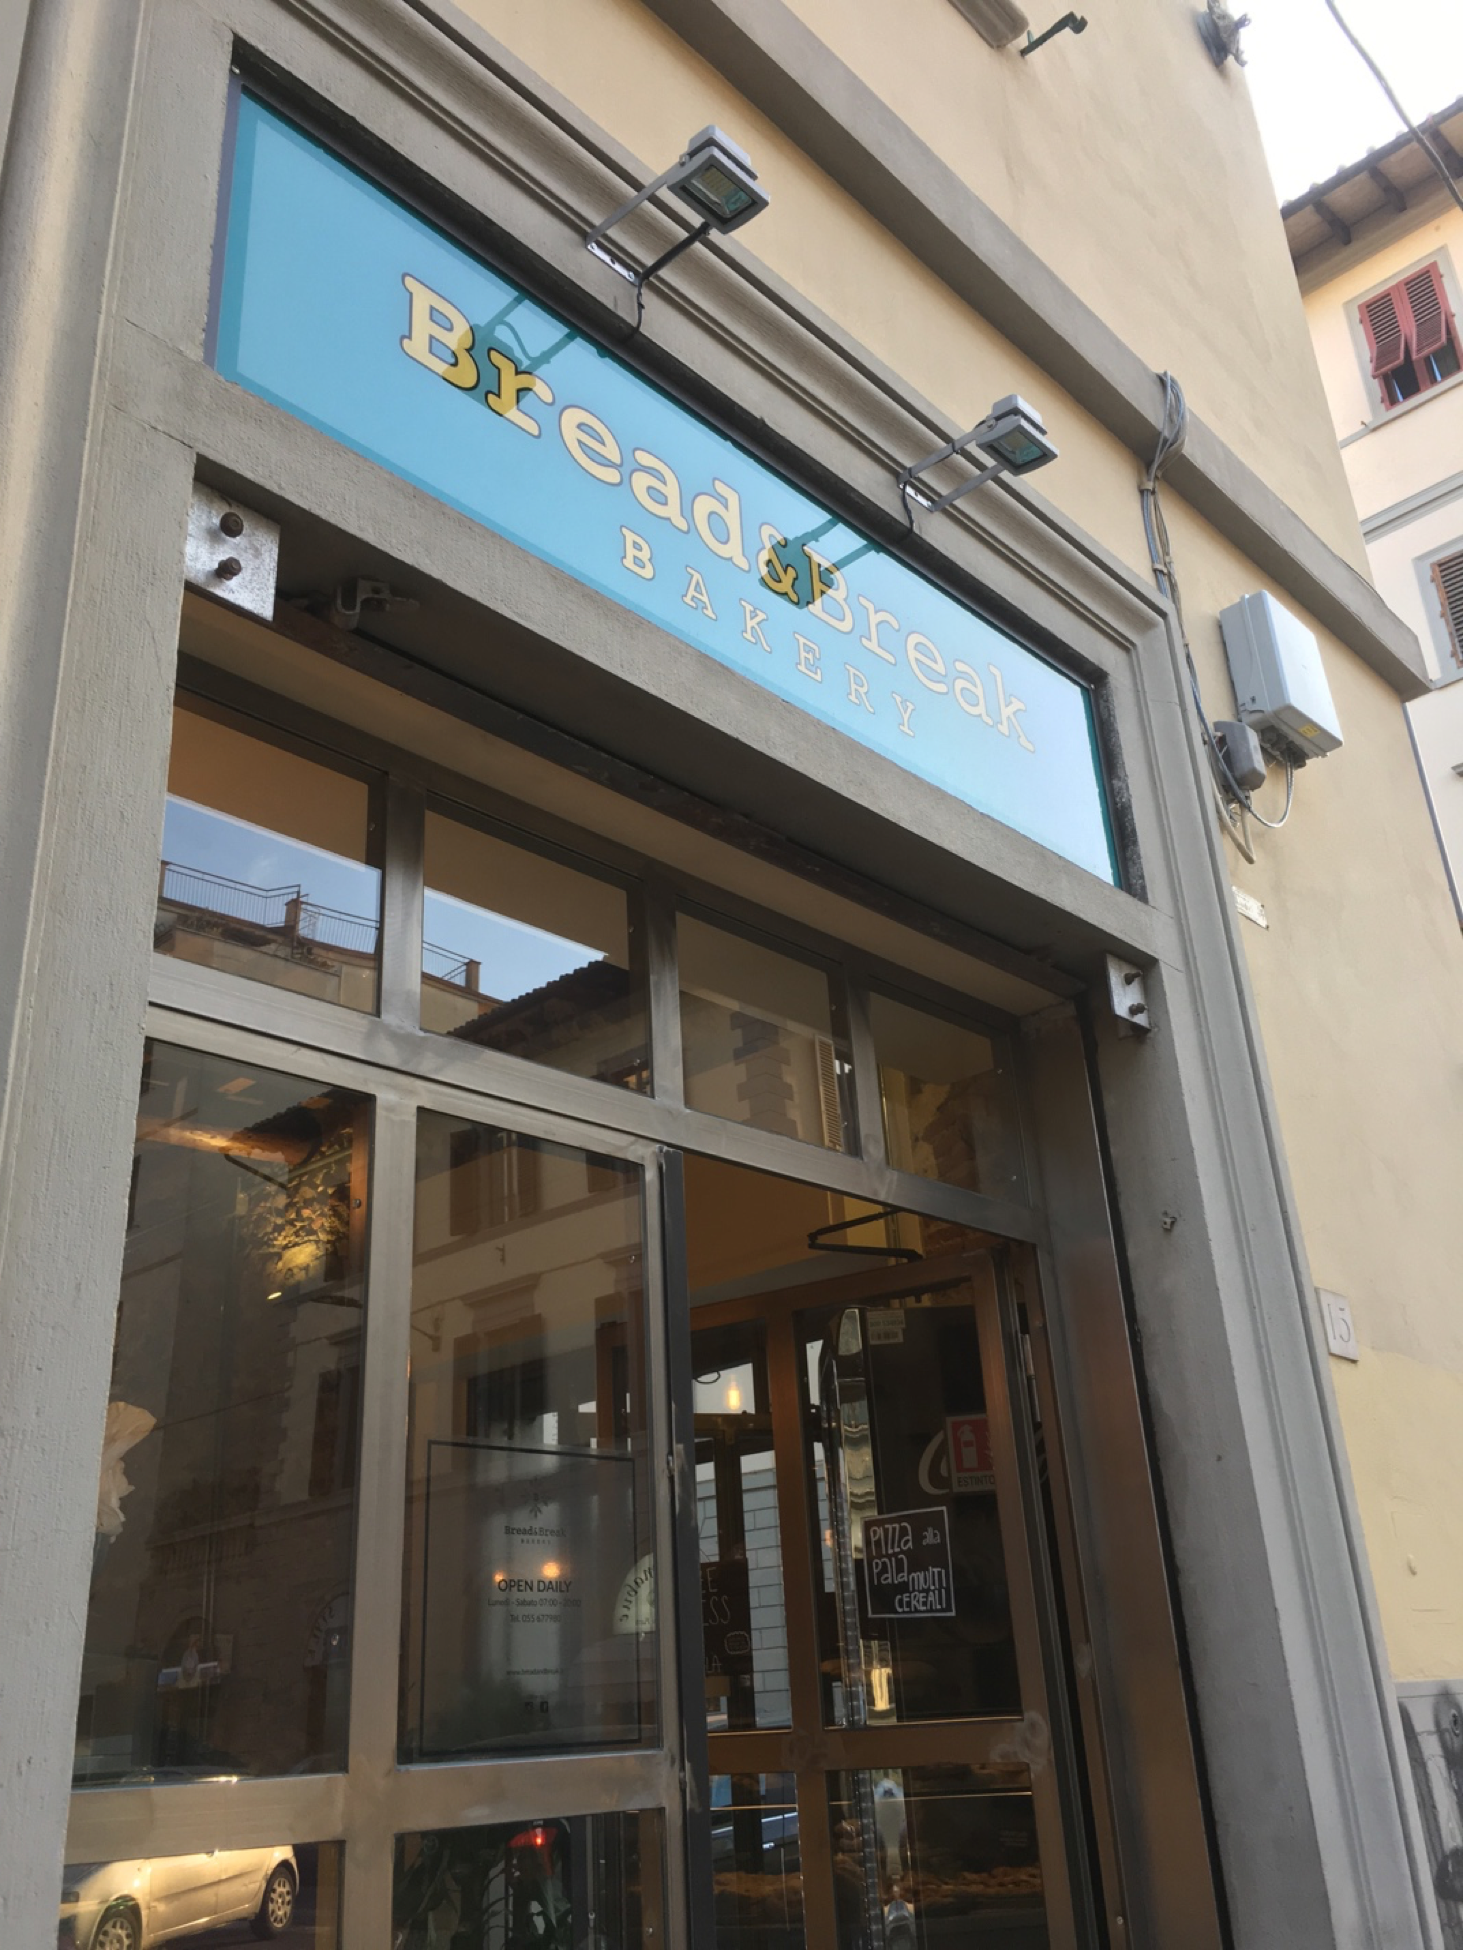 Bread and Break Bakery in Florence